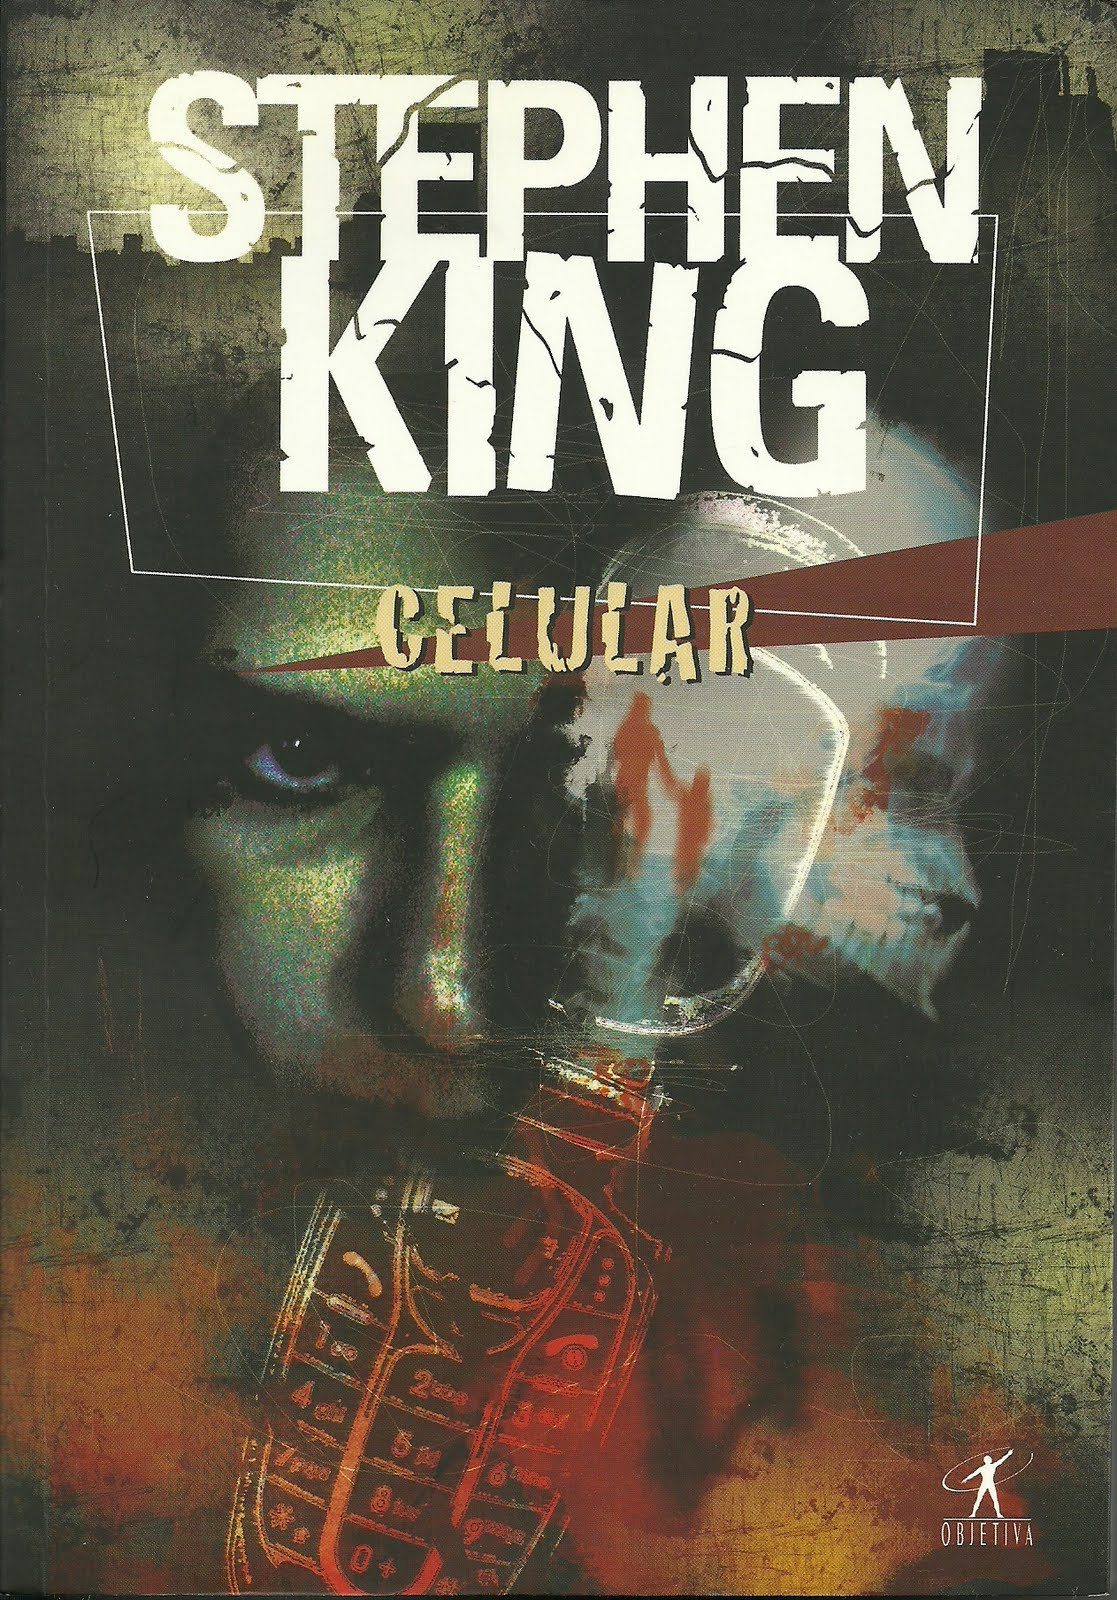 CELL-Stephen King-Book Brasil-OFFICIAL PROMO PHOTO-06NOVEMBRO2013